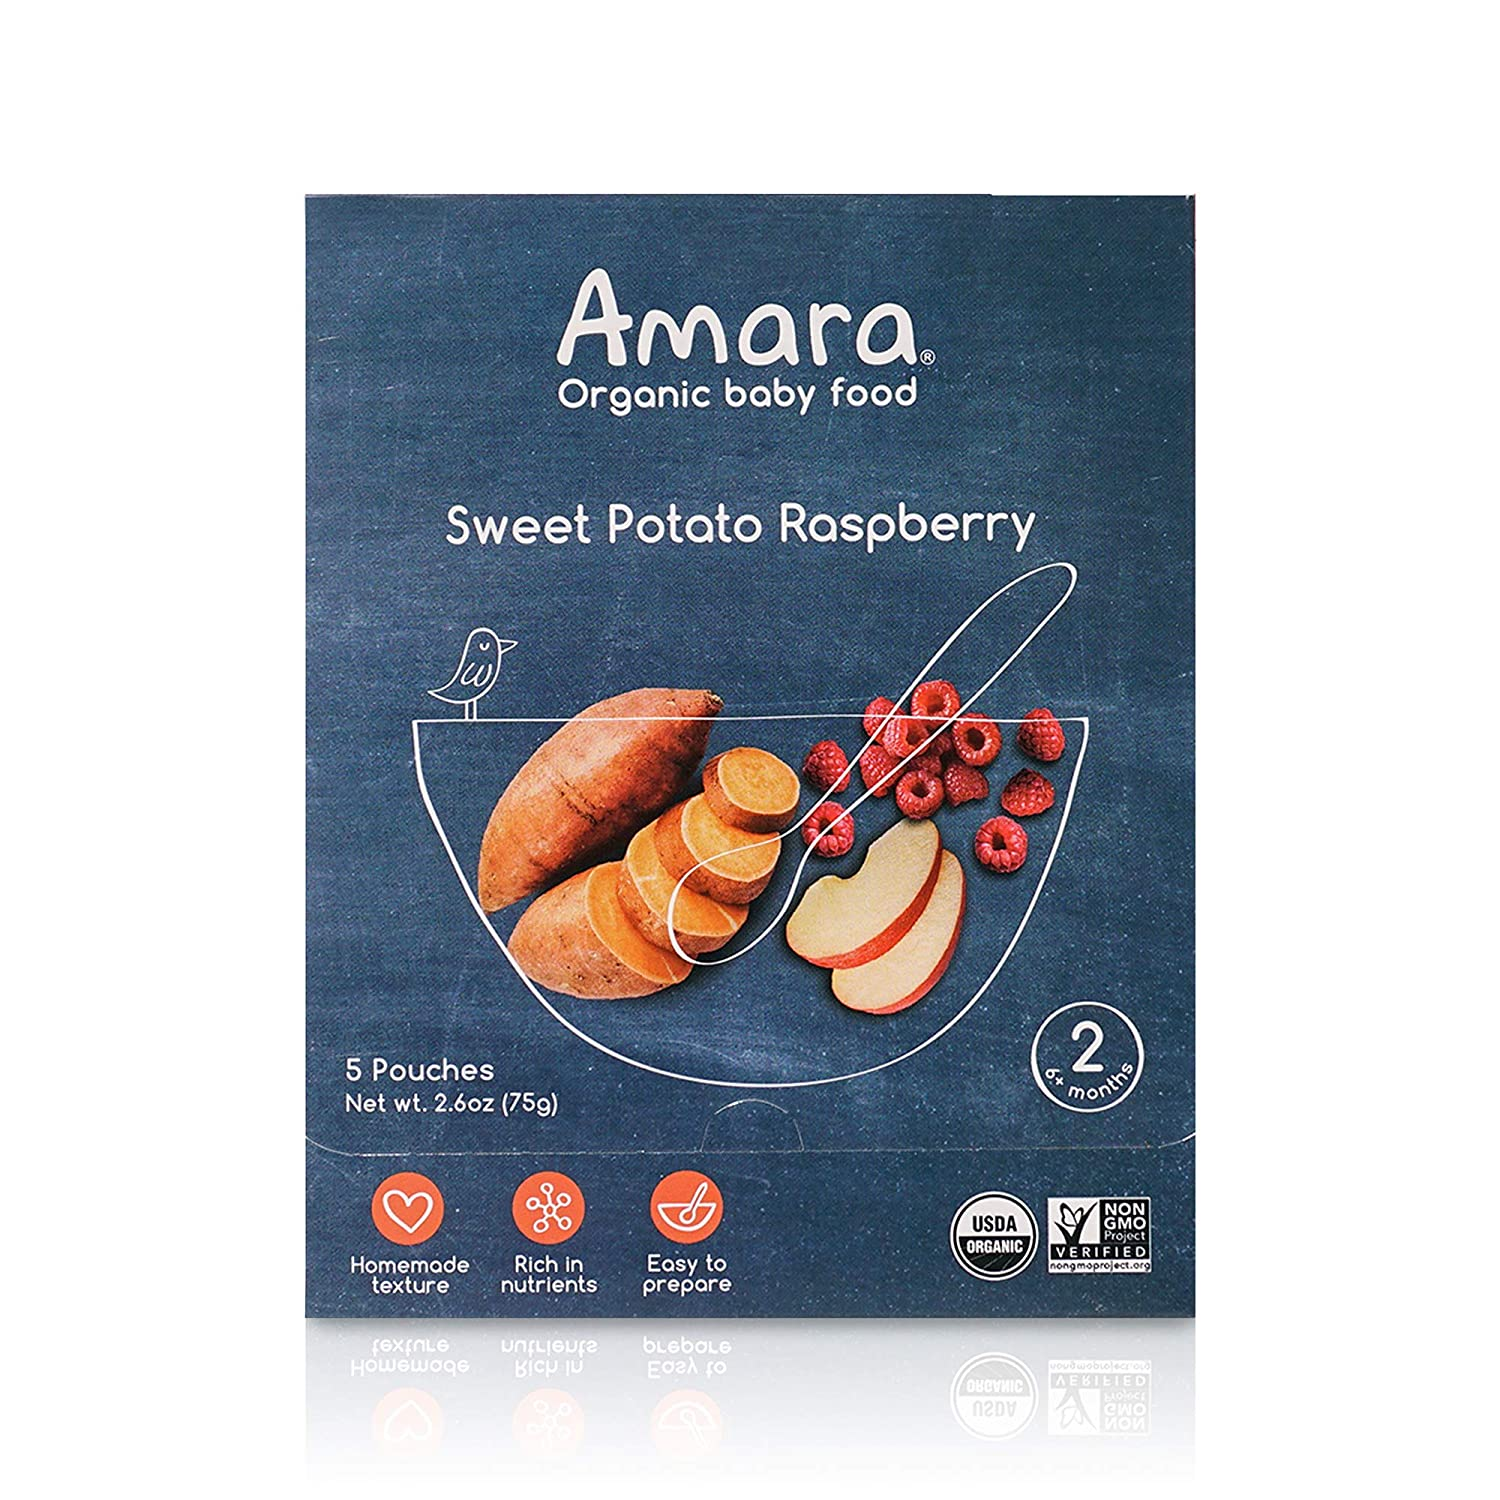 Amara Organic Baby Food   Sweet Potato Raspberry   Homemade Made Possible   Mix with Breastmilk or Water   Certified Organic, Non-GMO, No Added Sugars  Stage 2   5 Pouches